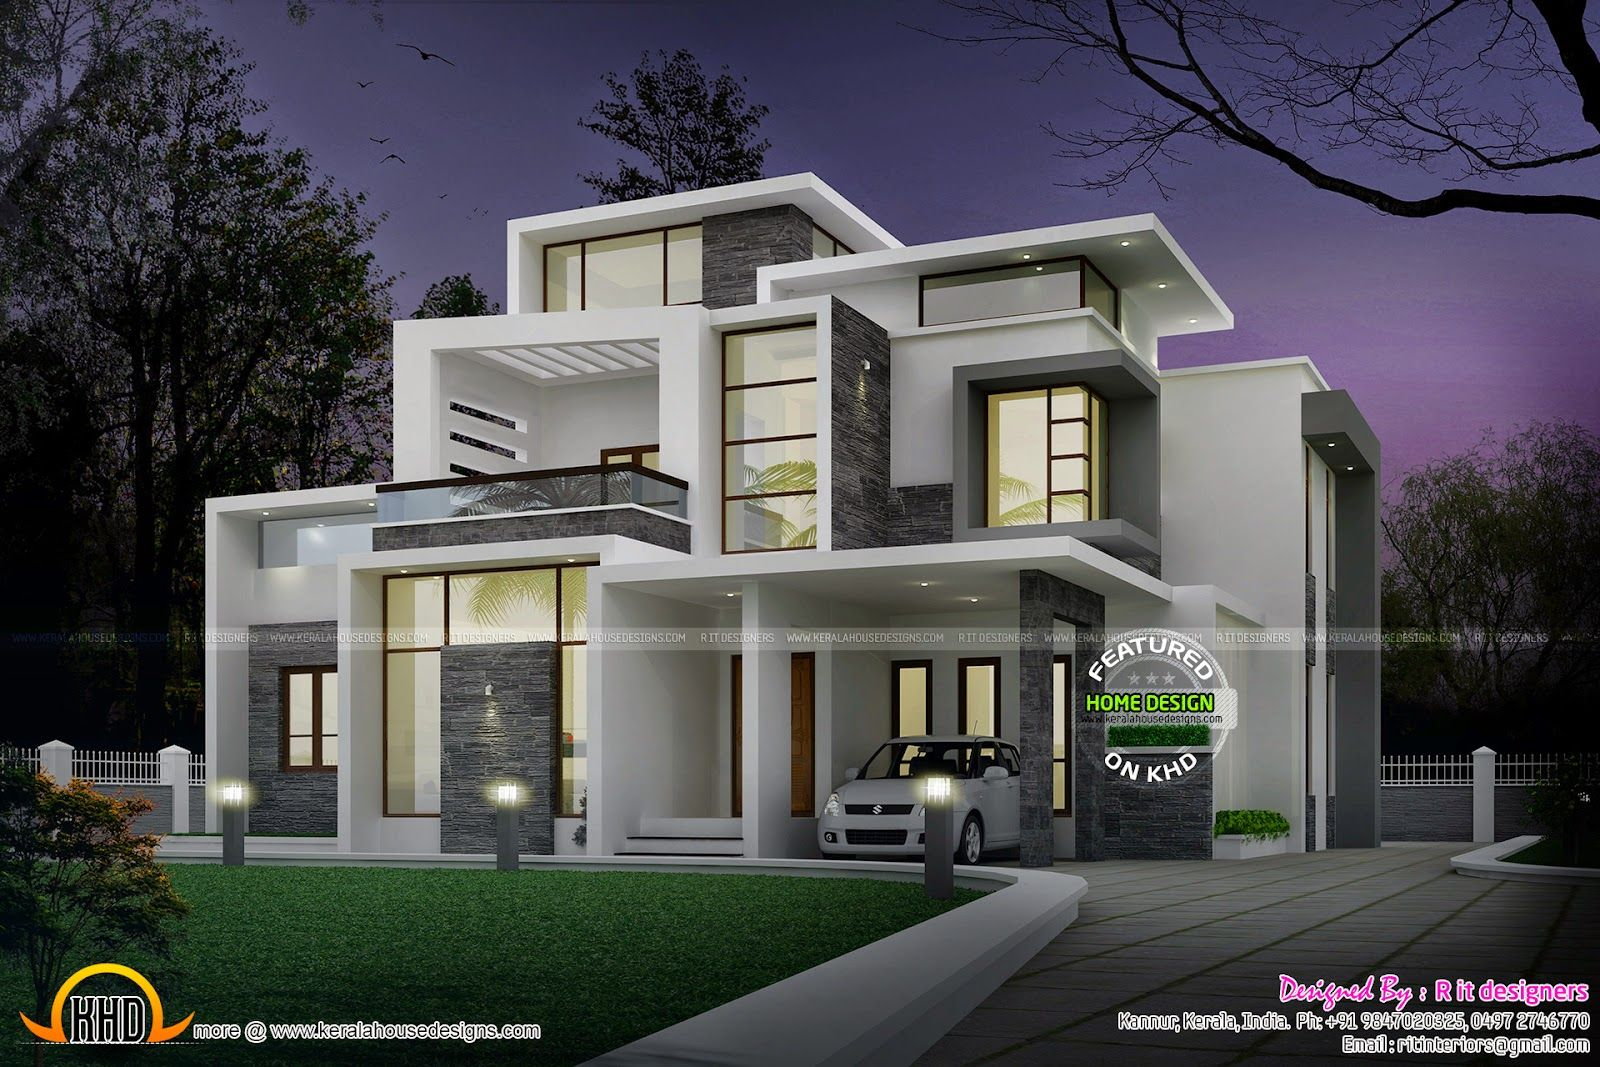 Grand contemporary home design kerala home design and for Modern home plans and designs